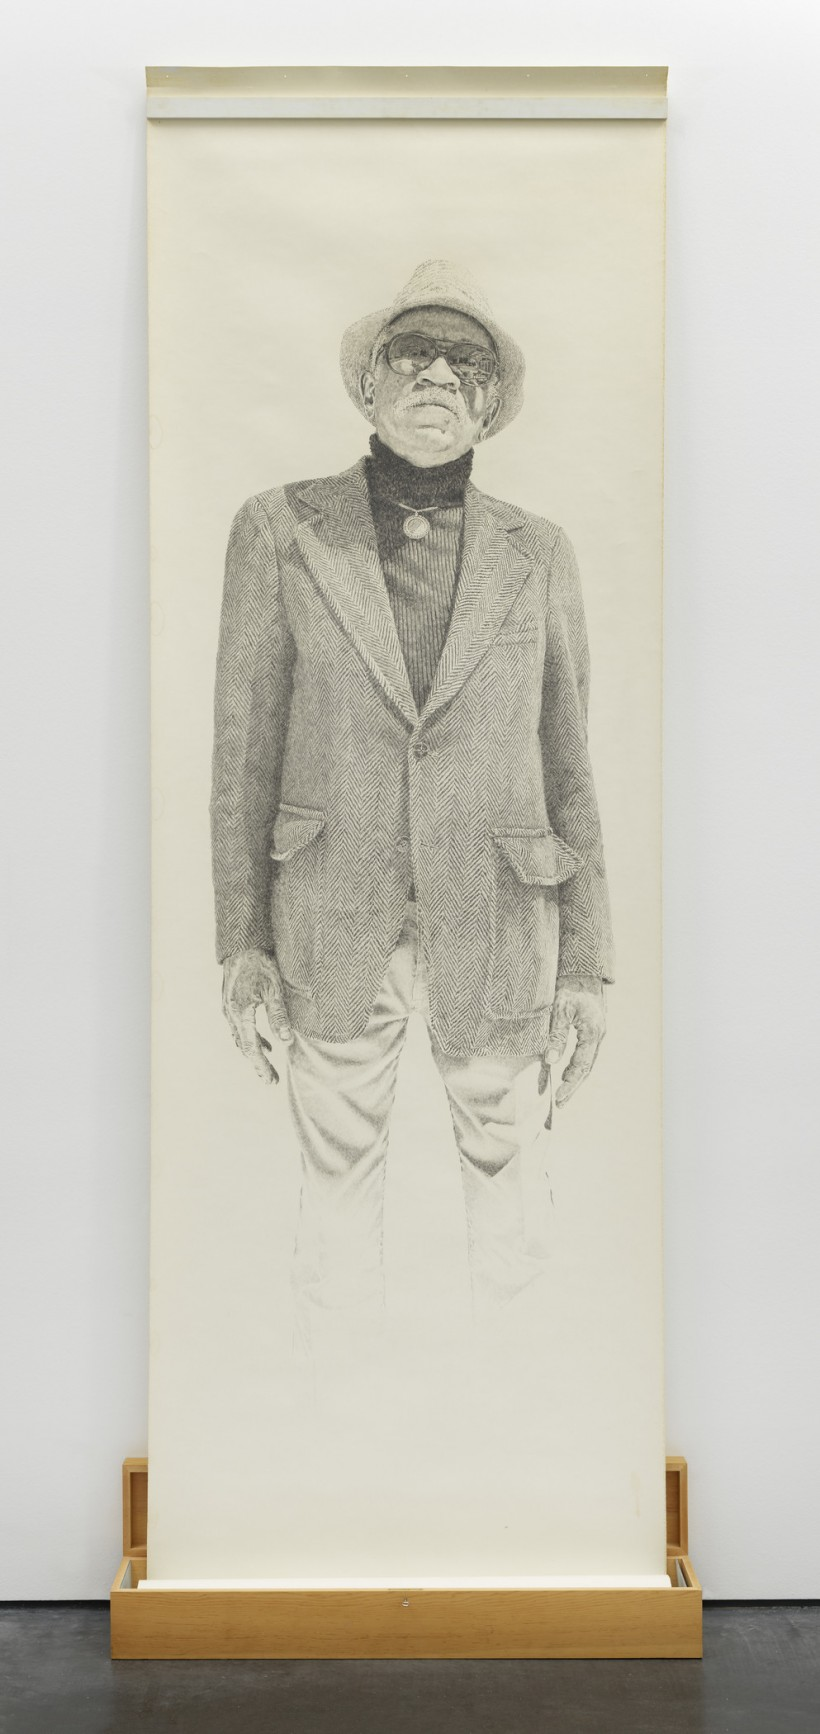 Image: Kent Twitchell, Portrait of Charles White, 1977